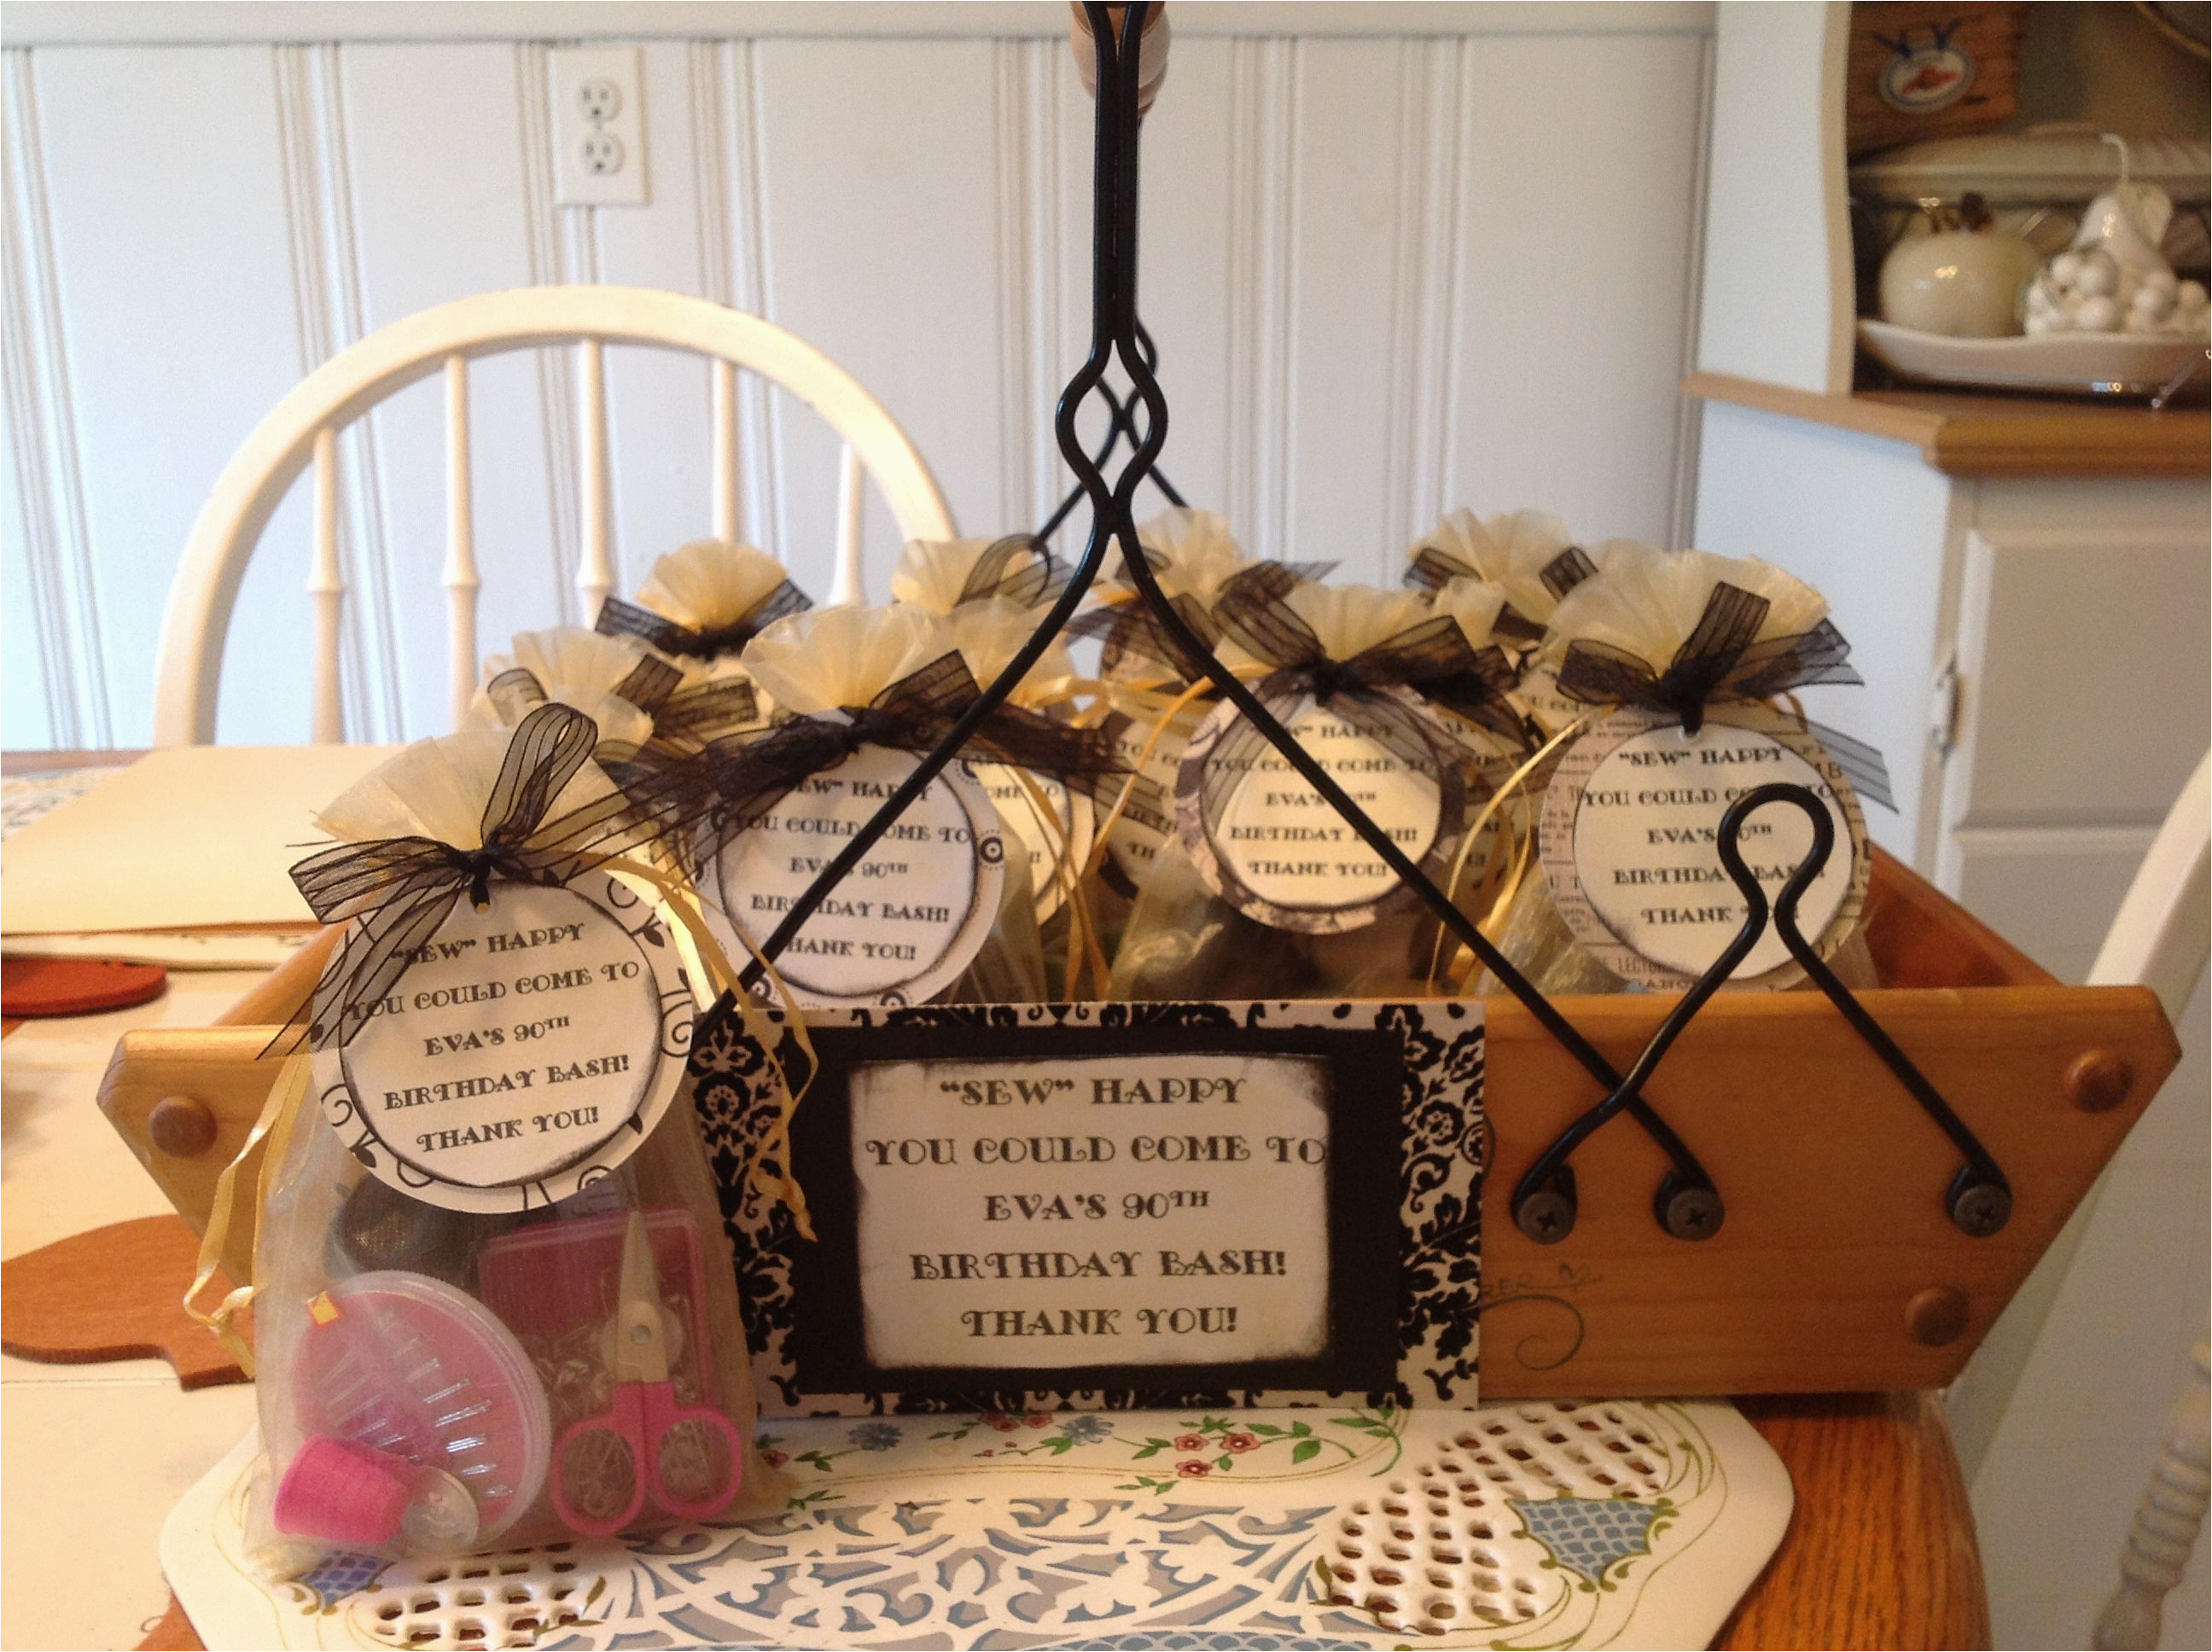 90th Birthday Party Decorations Ideas Mini Sewing Kits As A Favor For